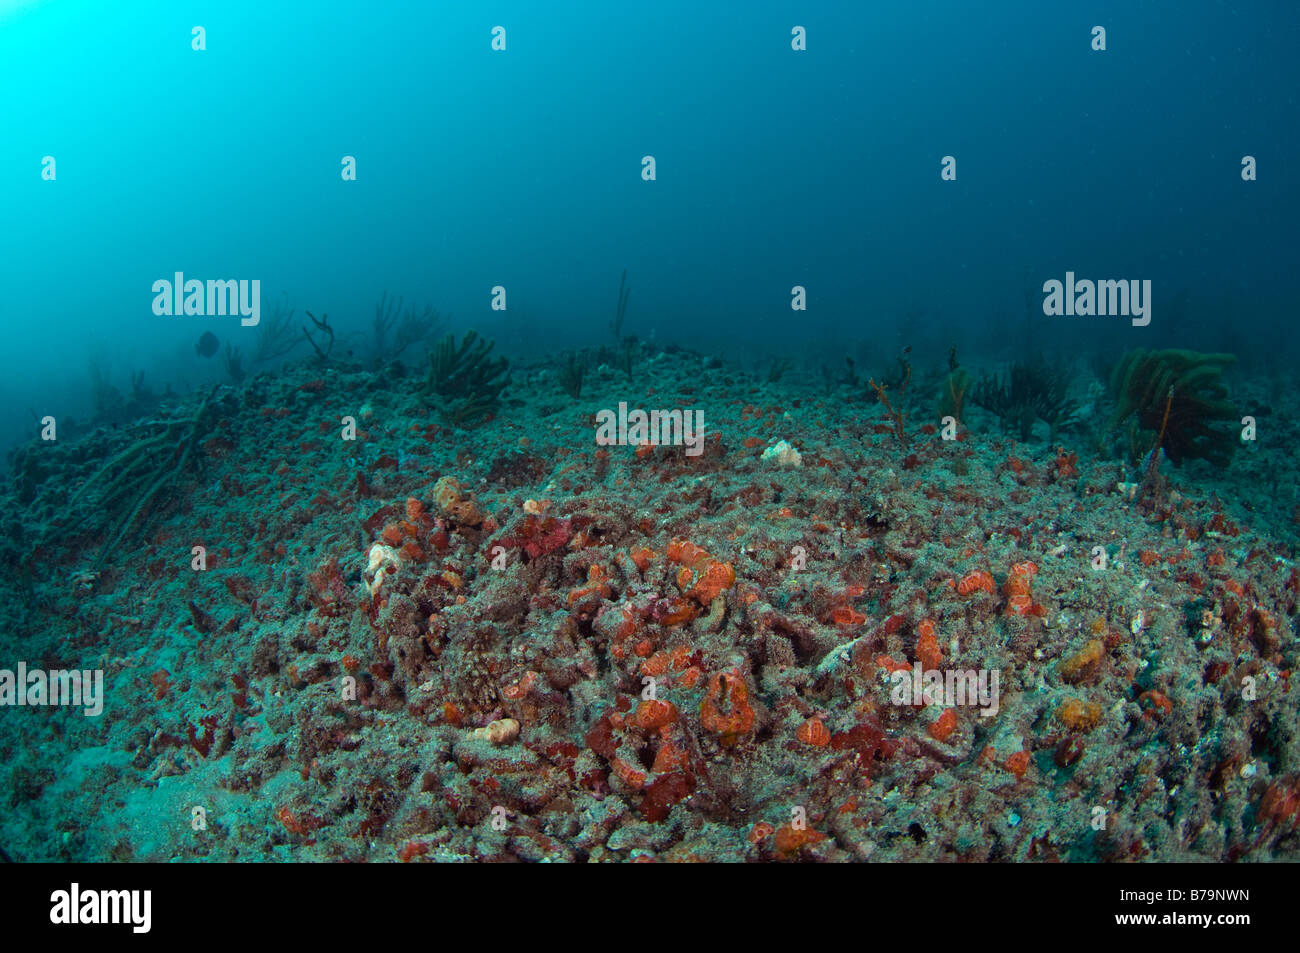 Coral reef in Palm Beach FL recovering after extensive hurricane damage in 2004 - Stock Image